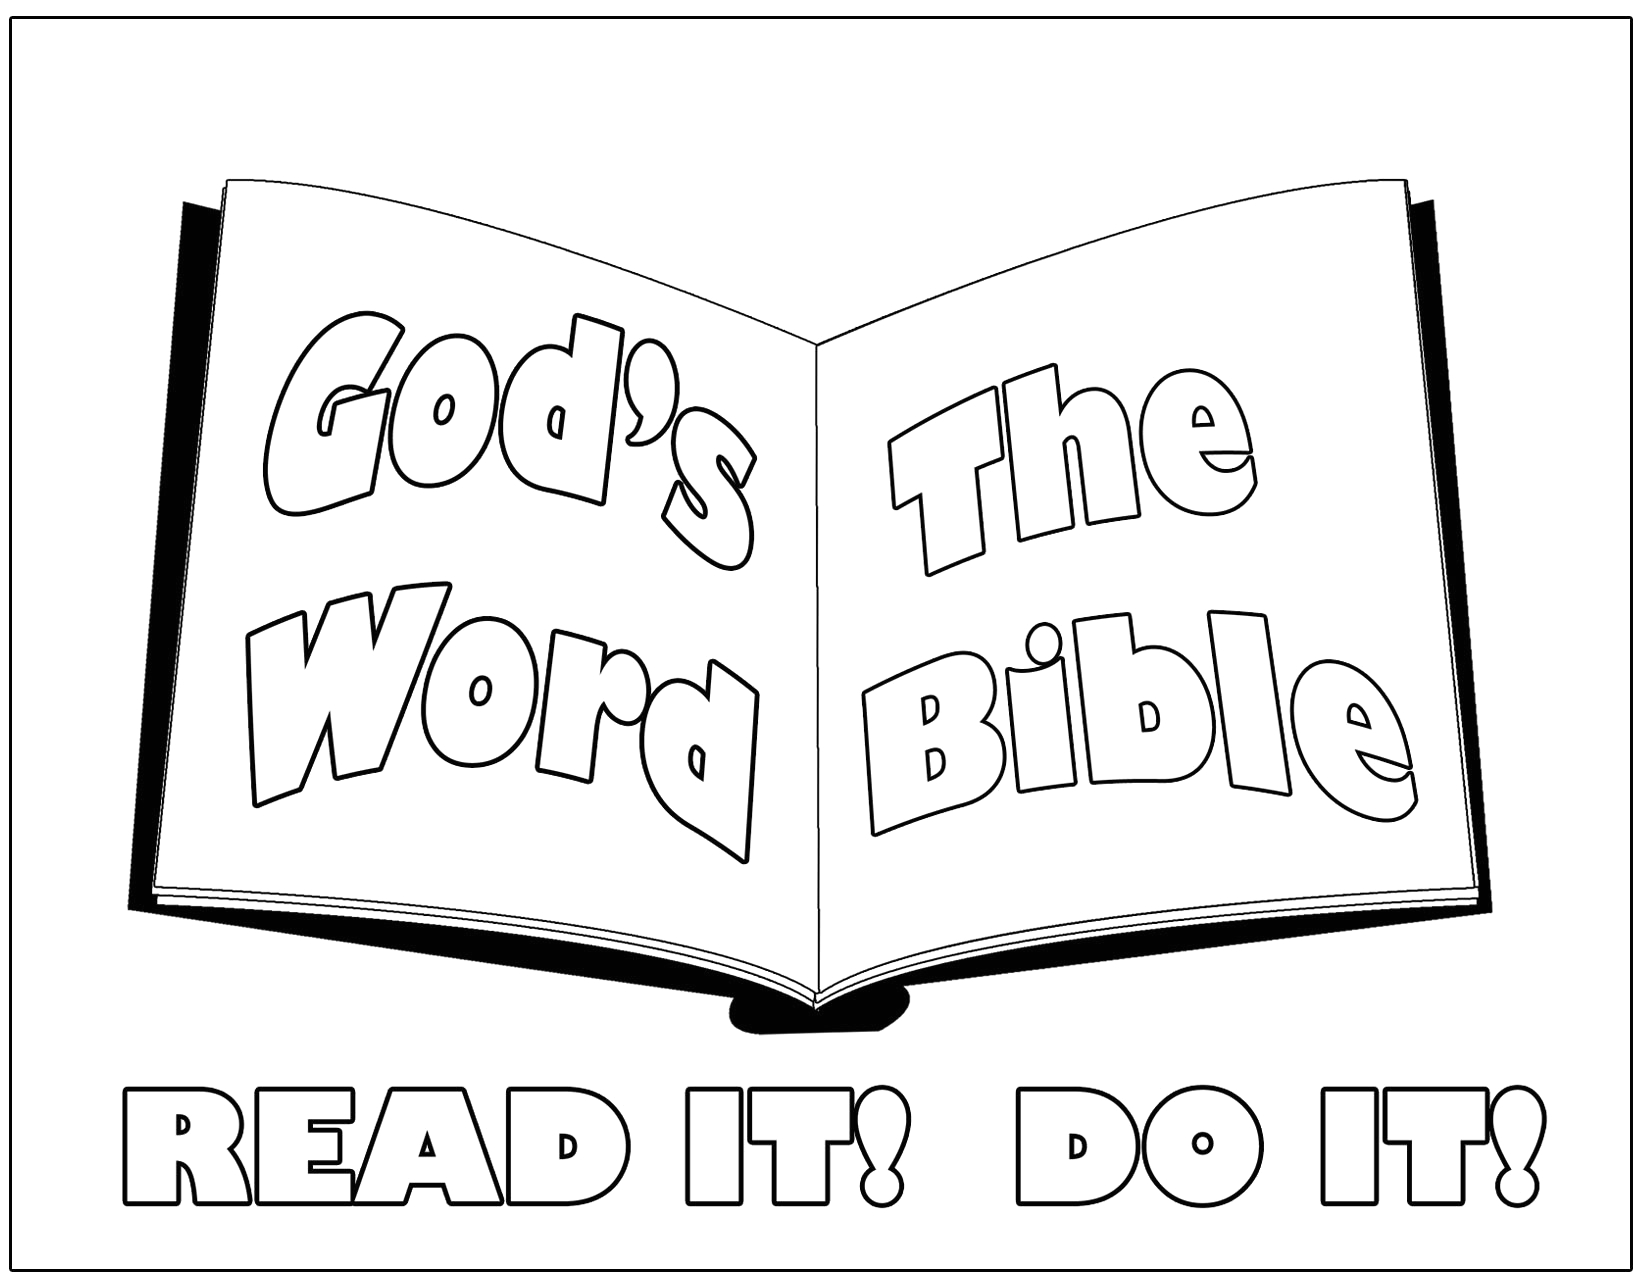 Free Coloring Pages for toddlers From the Bible Free Printable Bible Coloring Pages for Kids